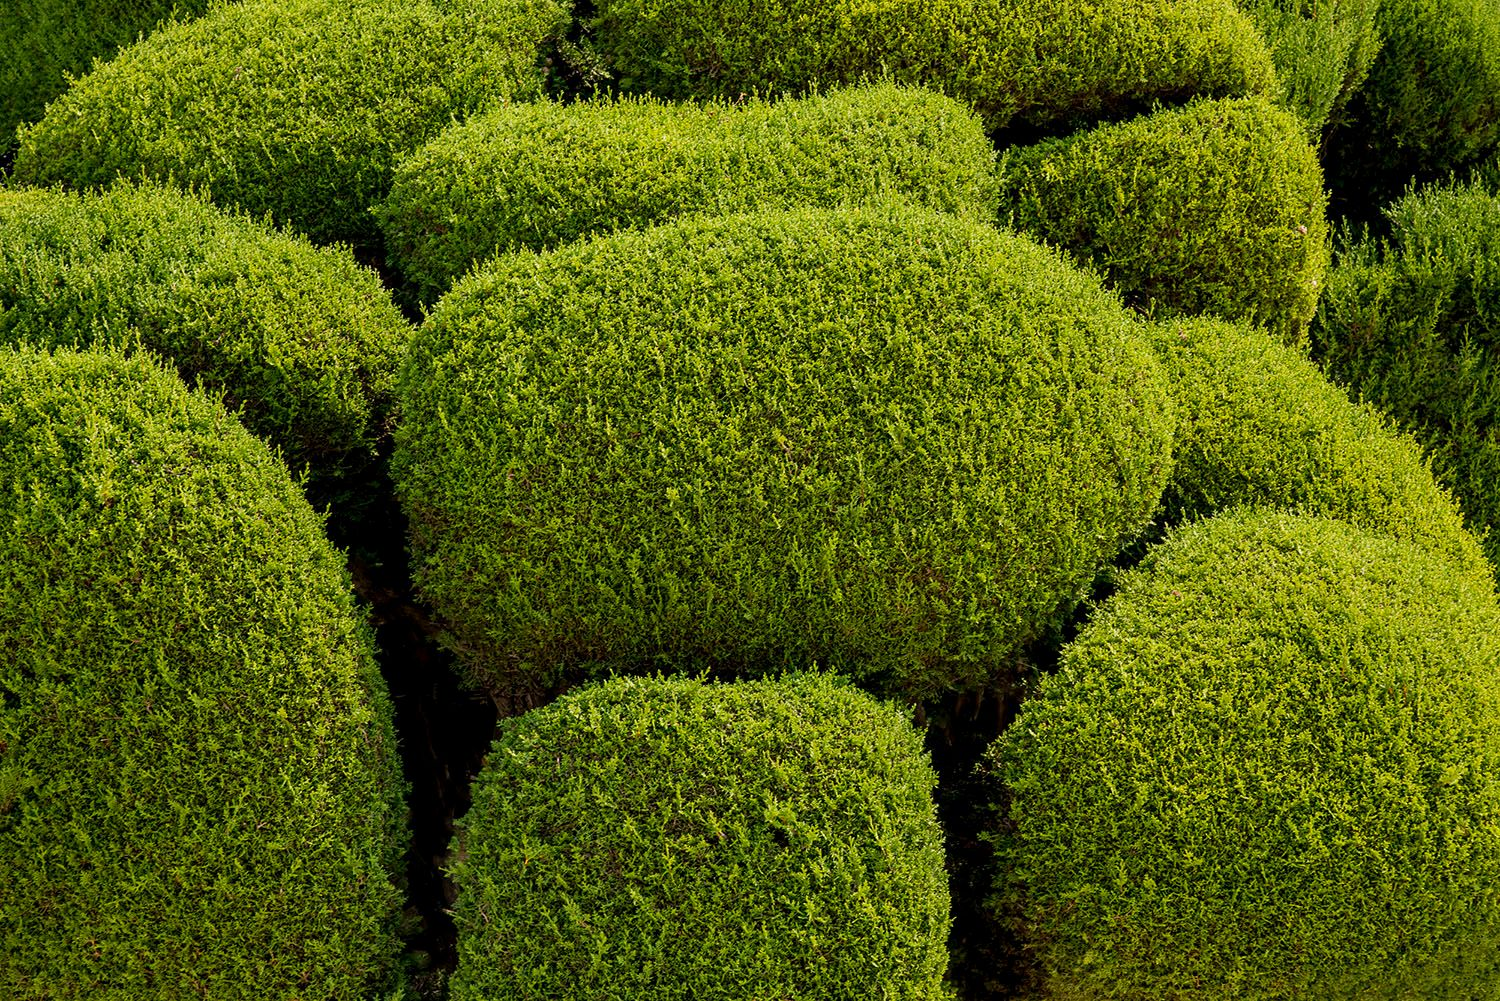 Green manicured trees